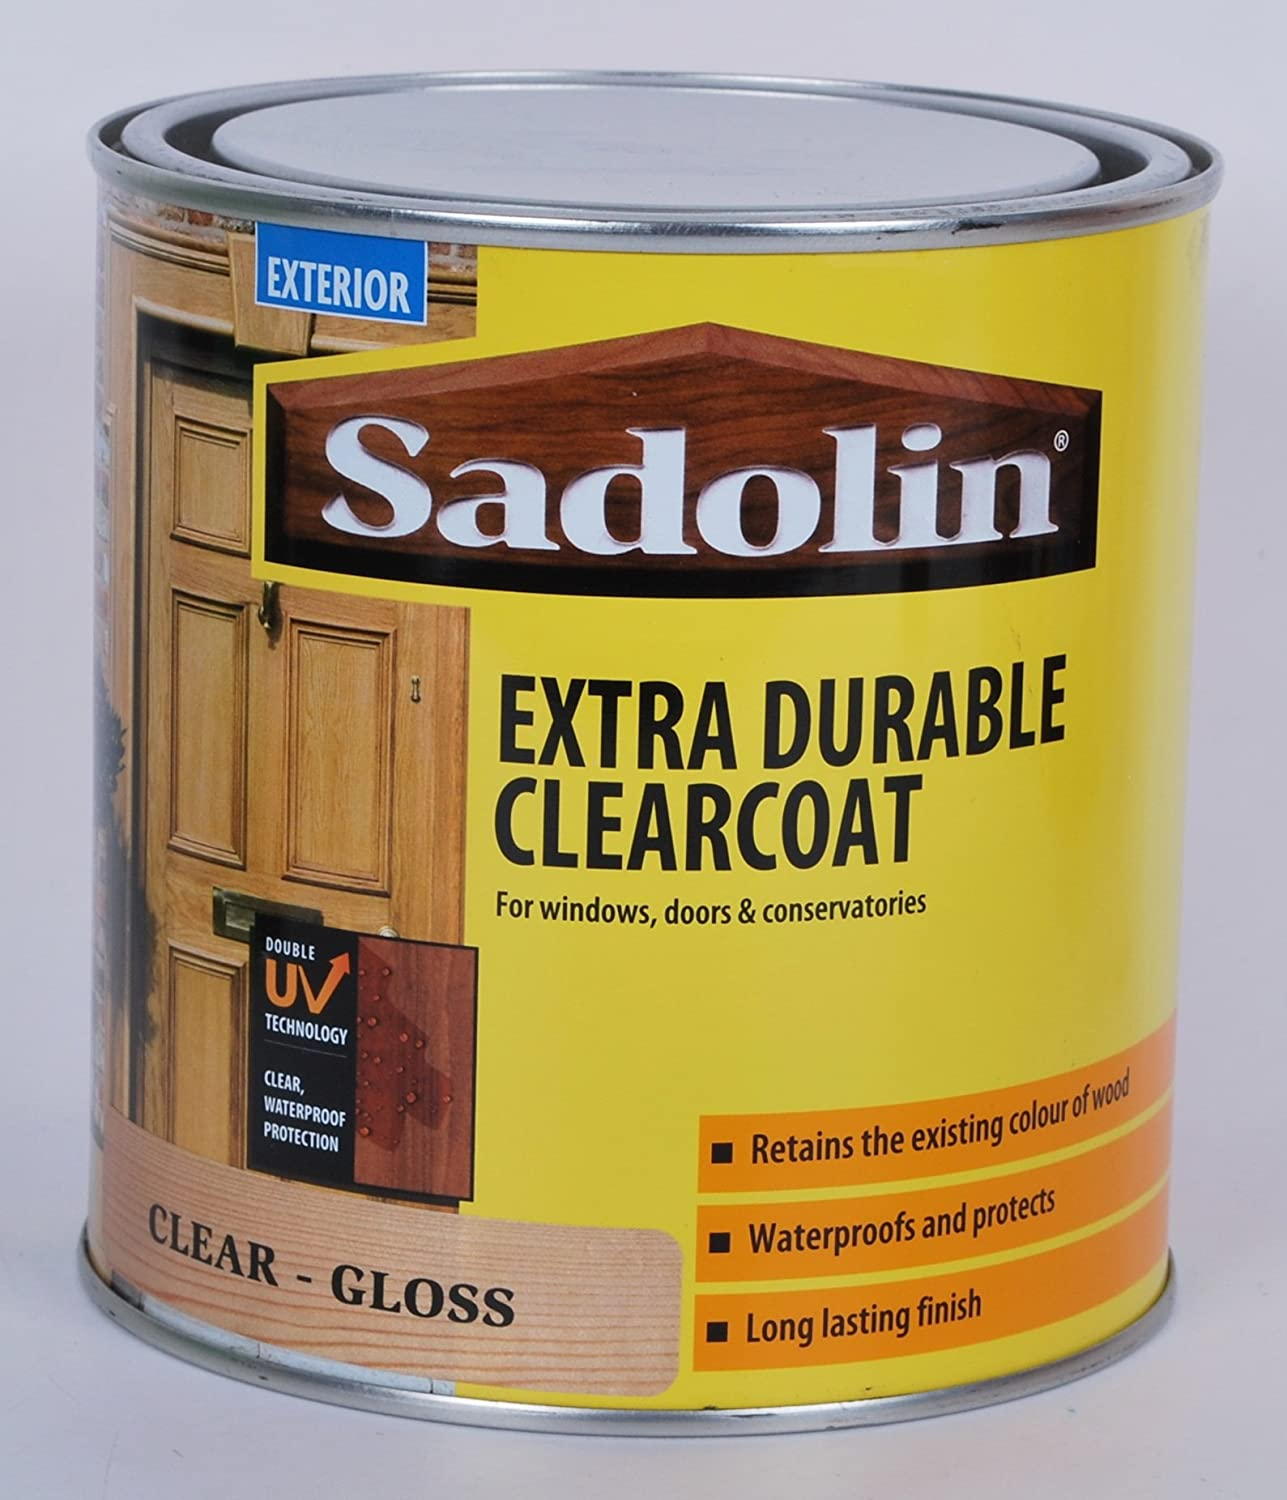 Sadolin Exterior Extra Durable Clearcoat Gloss Varnish 1 Litre  485459 Sadolin Exterior Ultra Base Coat   1L   Ultra Clear  Amazon co uk  . Exterior Clear Coat. Home Design Ideas